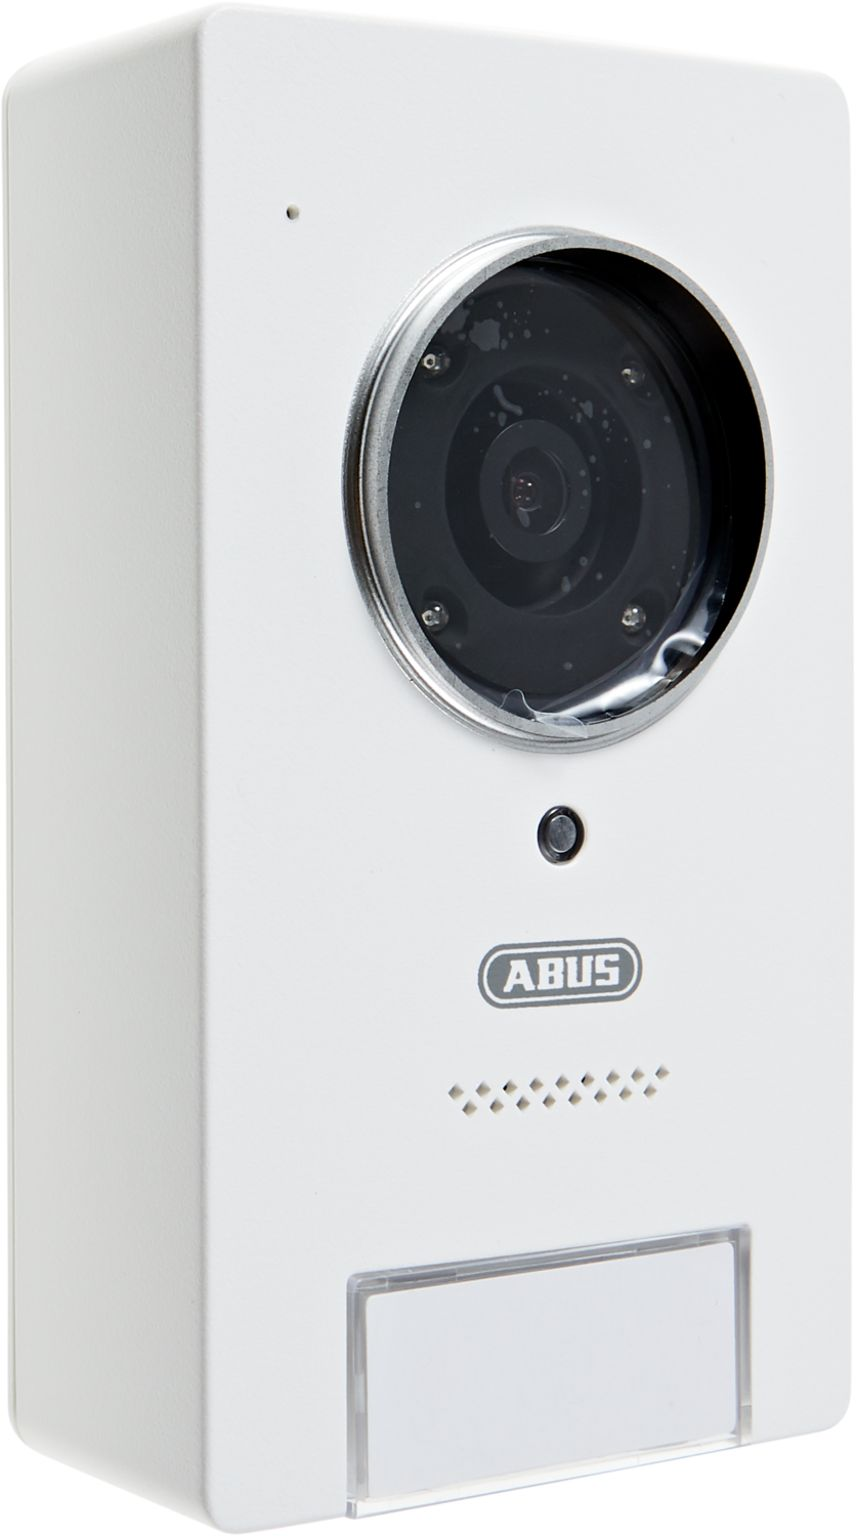 ABUS Smartvest IP-Video-Türsprechanlage